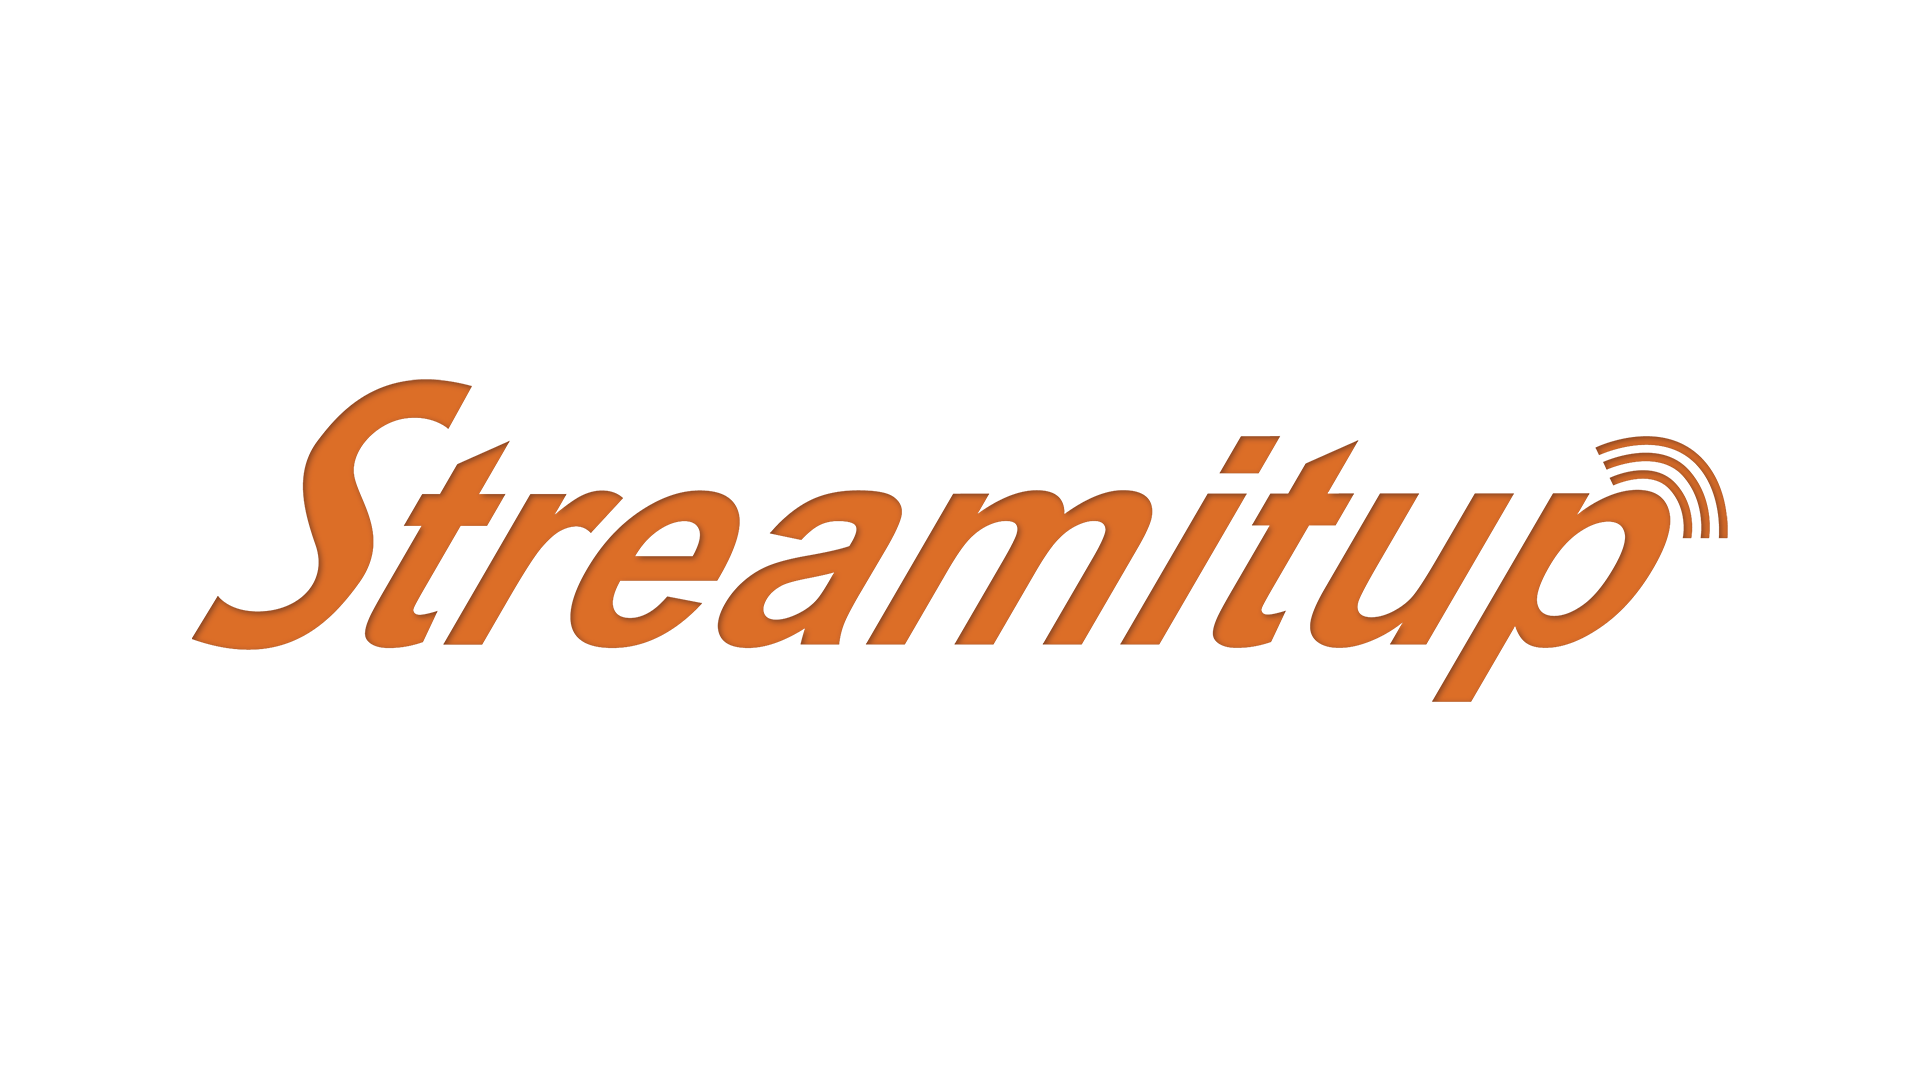 Streamitup Logo